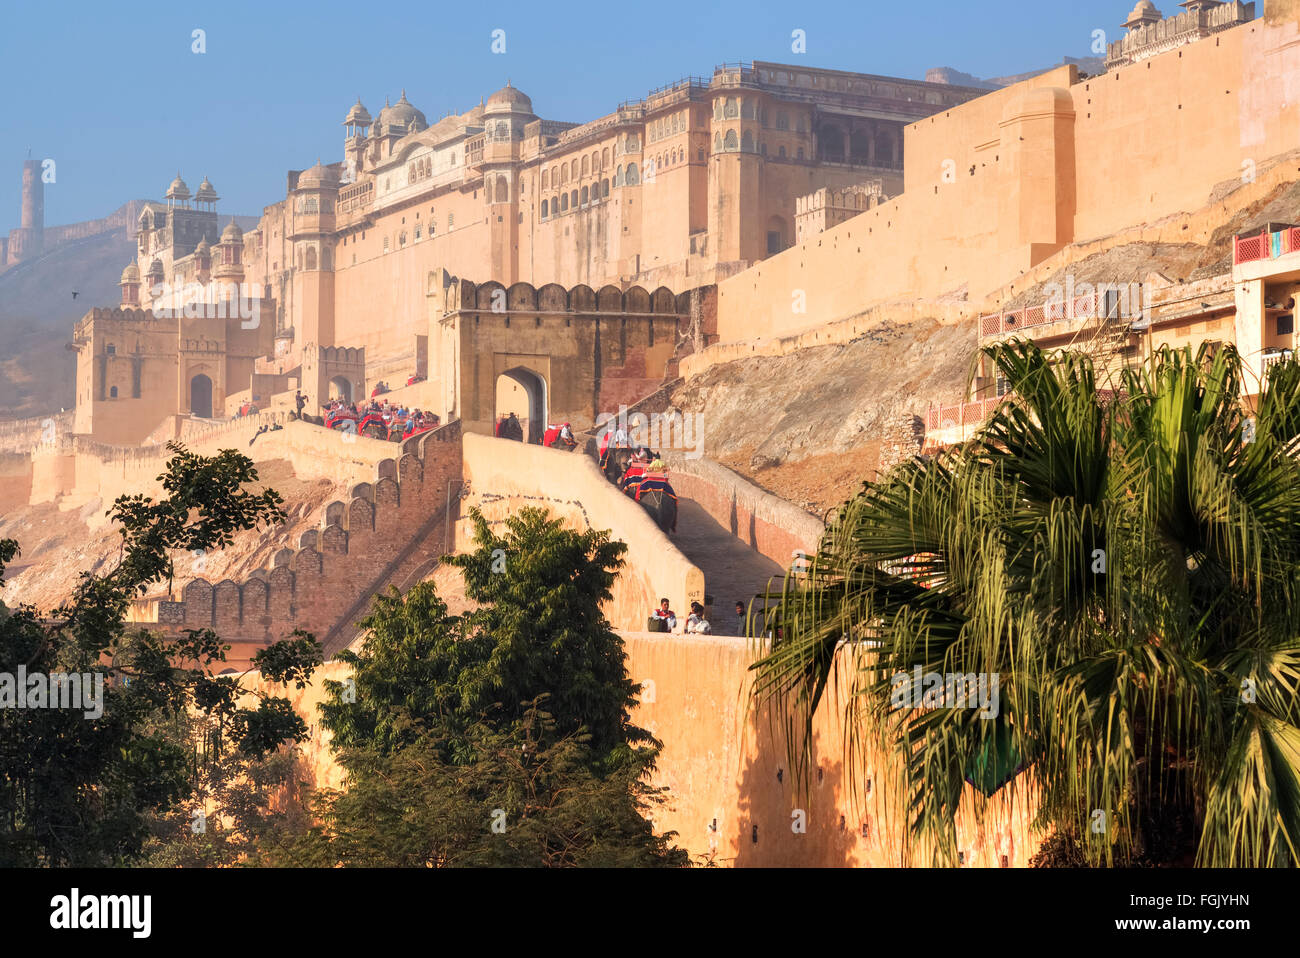 Fort Amer, Jaipur, Rajasthan, Inde Photo Stock